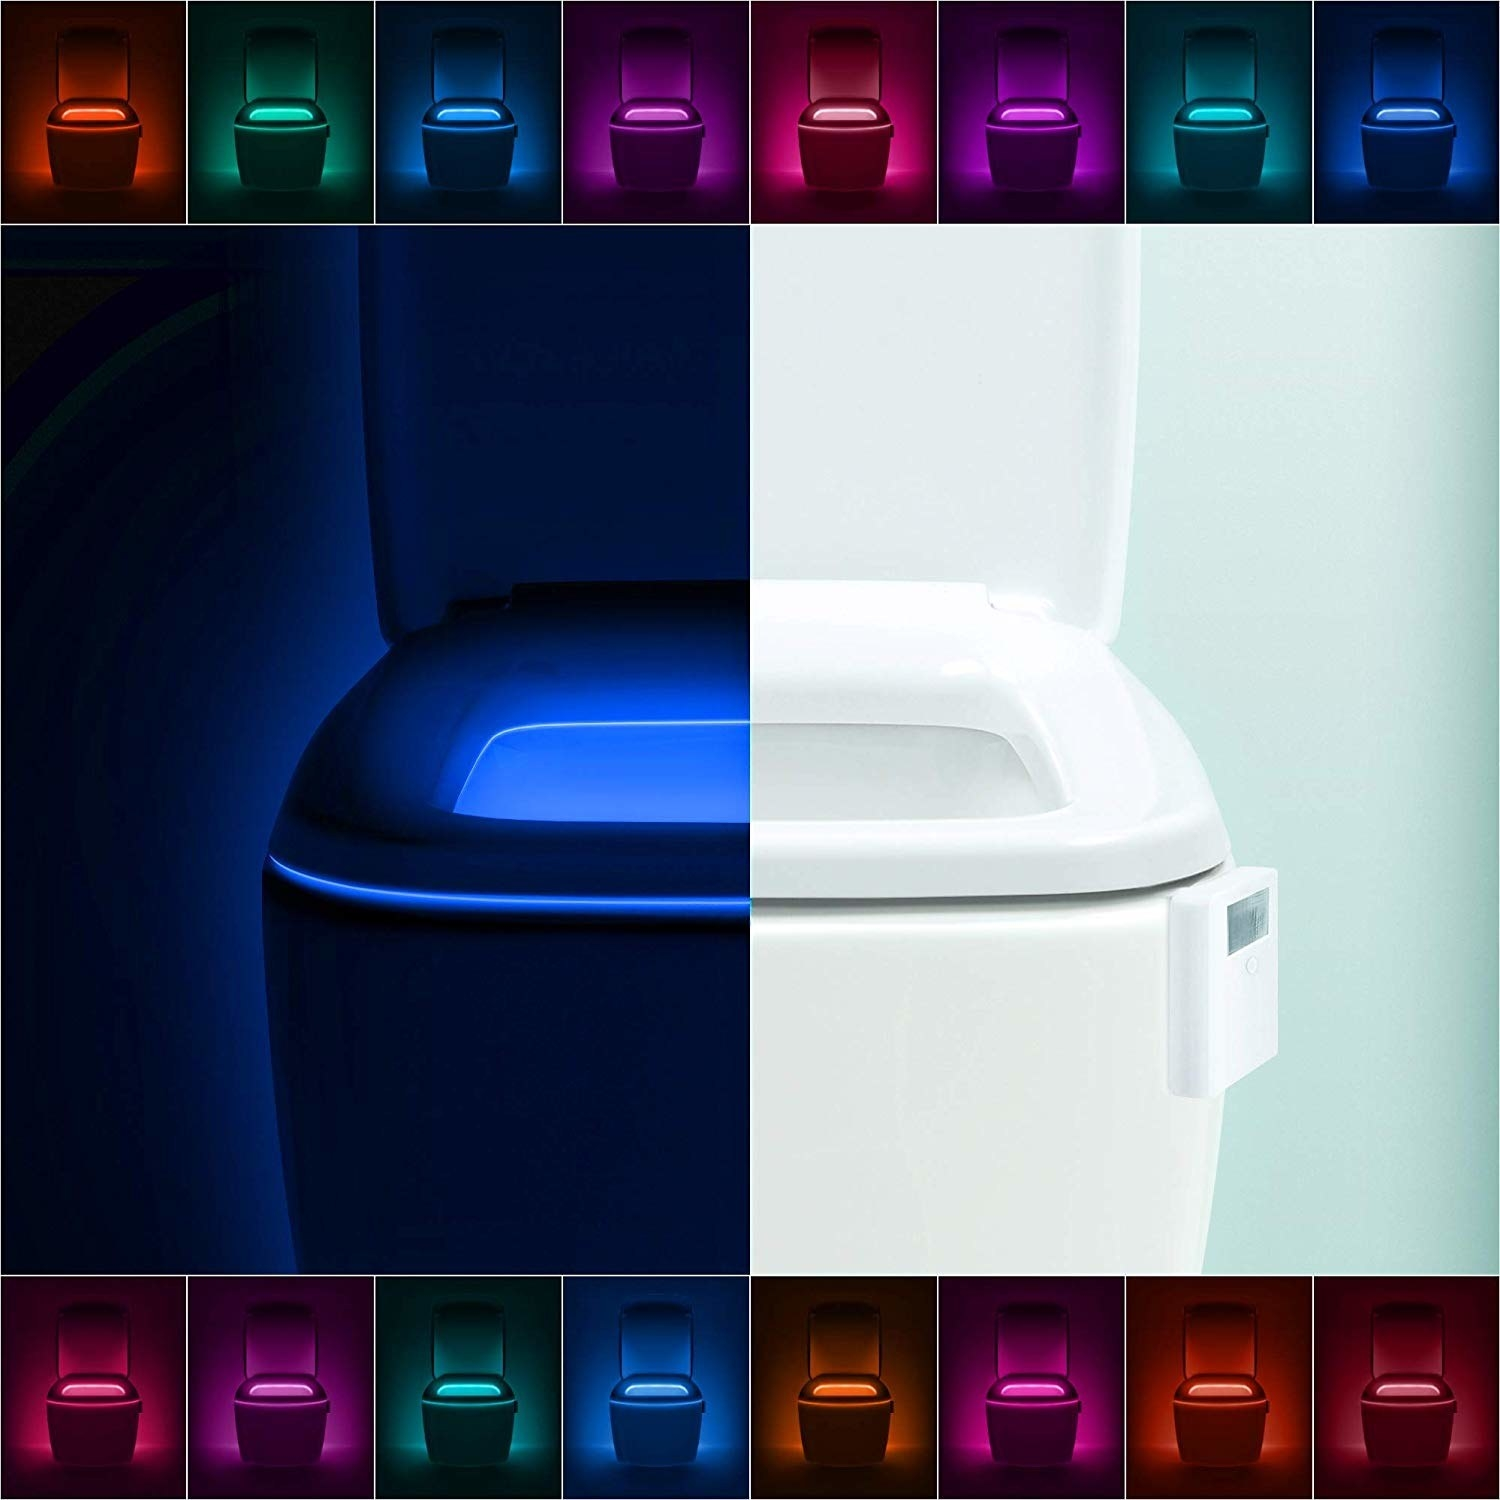 A collage of toilets showing all the colors it can glow